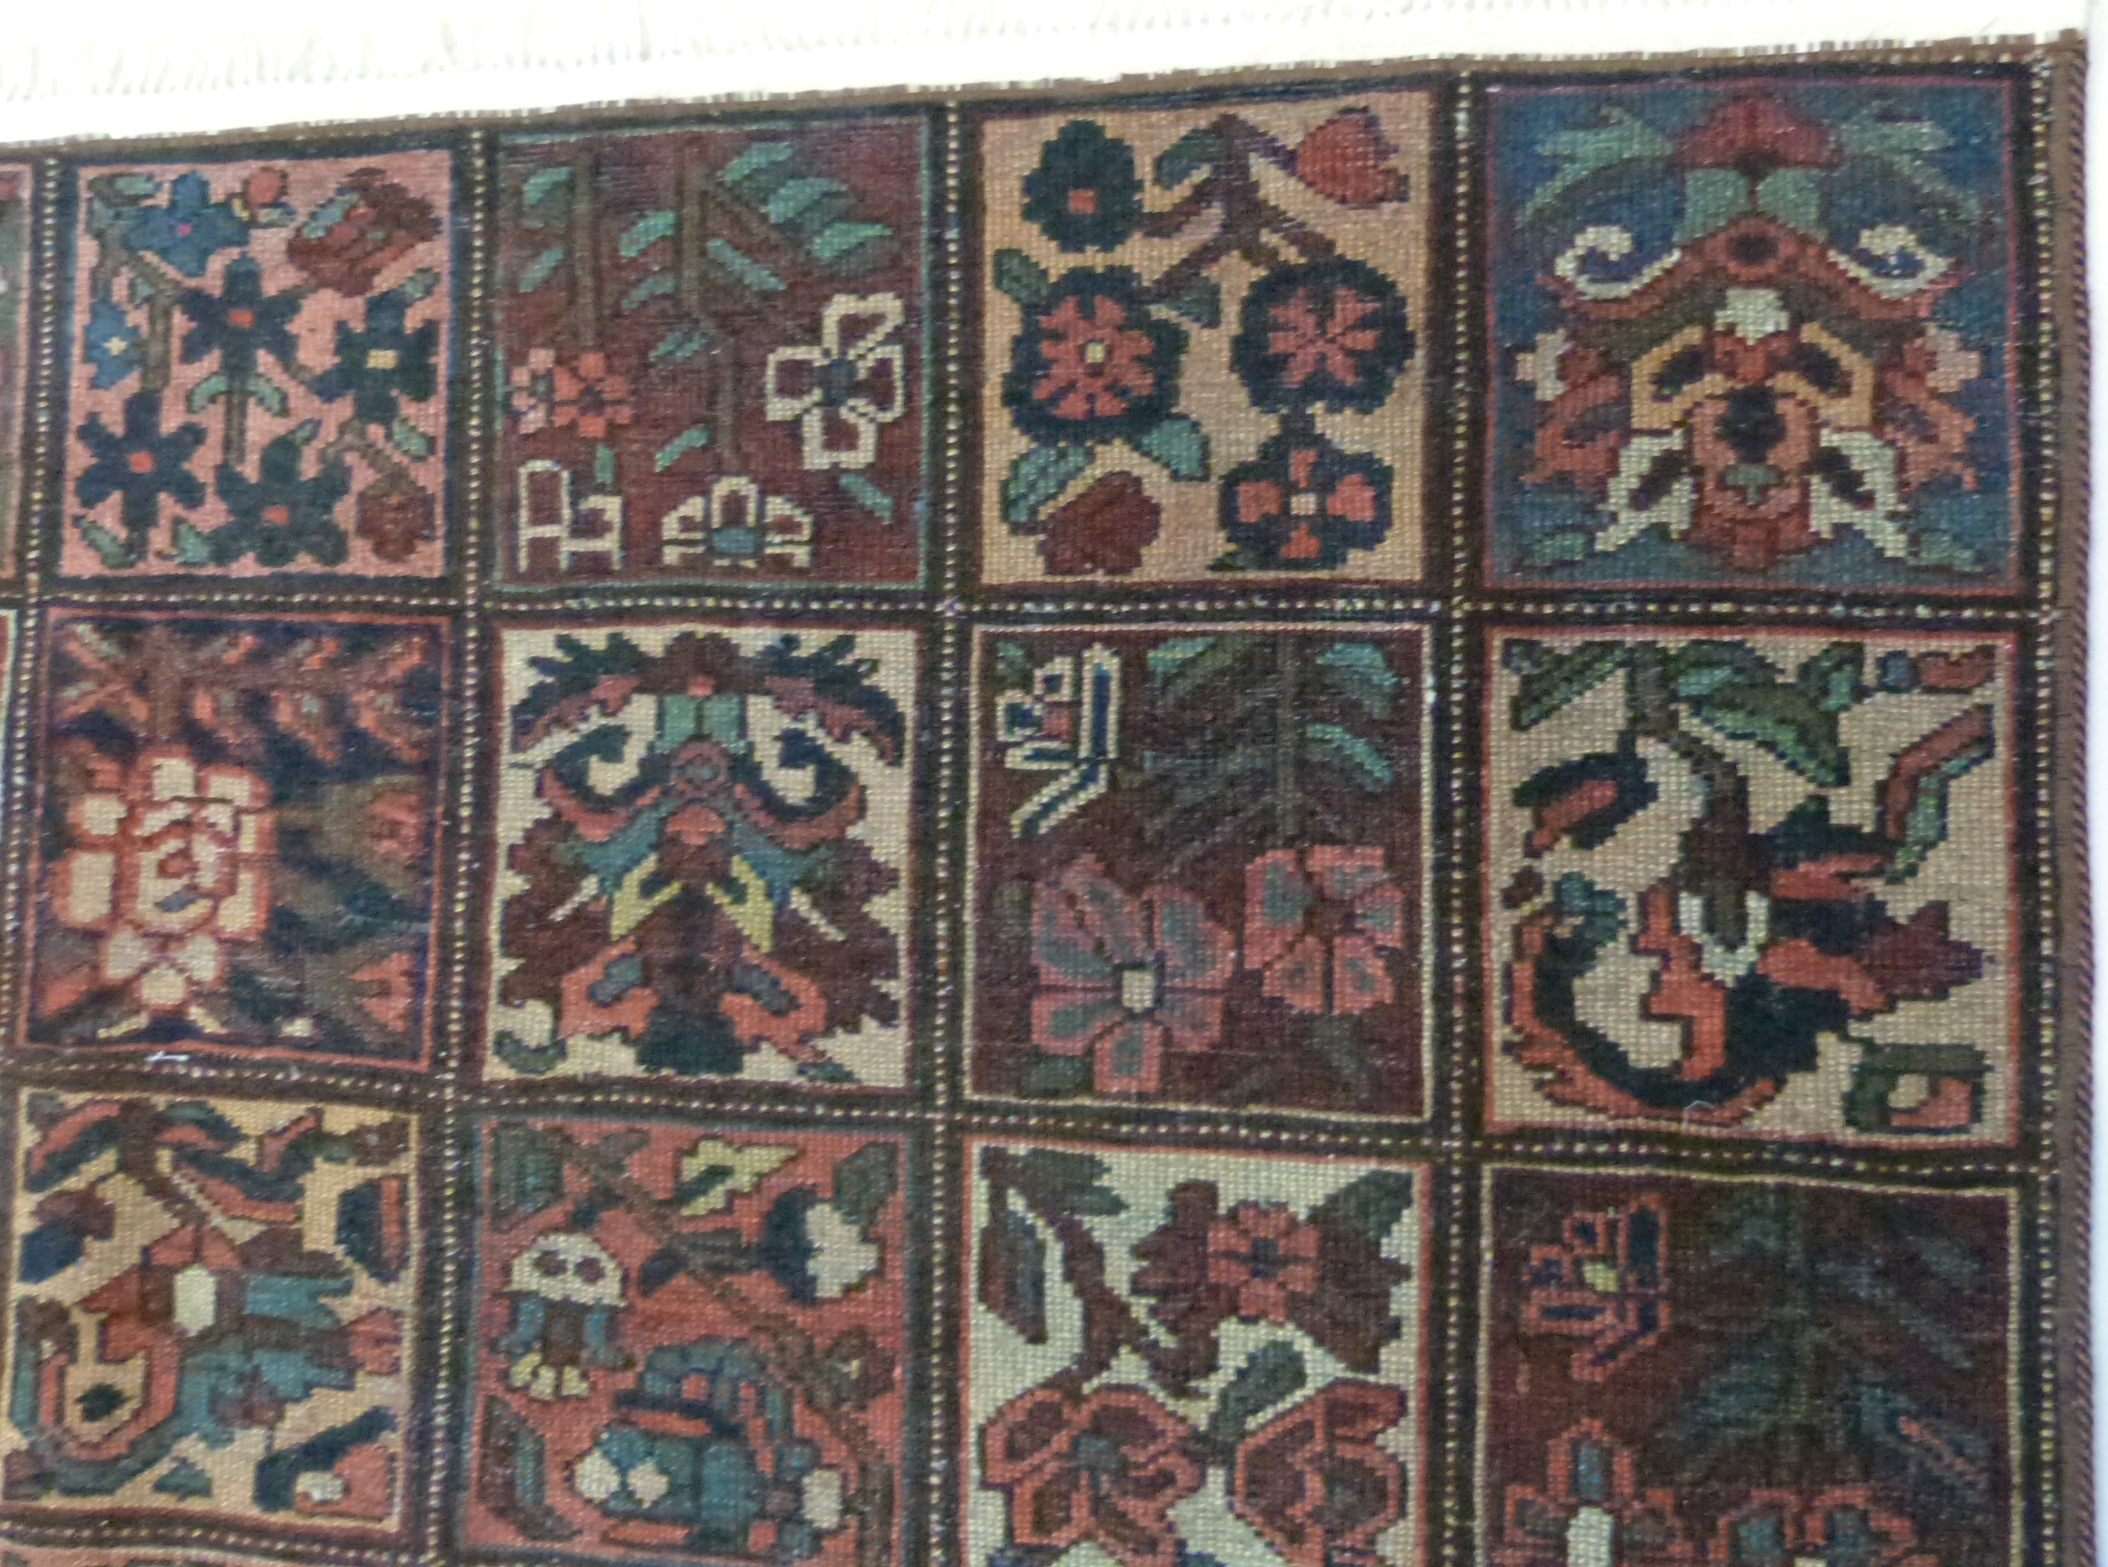 Vintage Persian Baktia Carpet, with all-over panelled design 260cm x 167cm approximately - Image 5 of 7